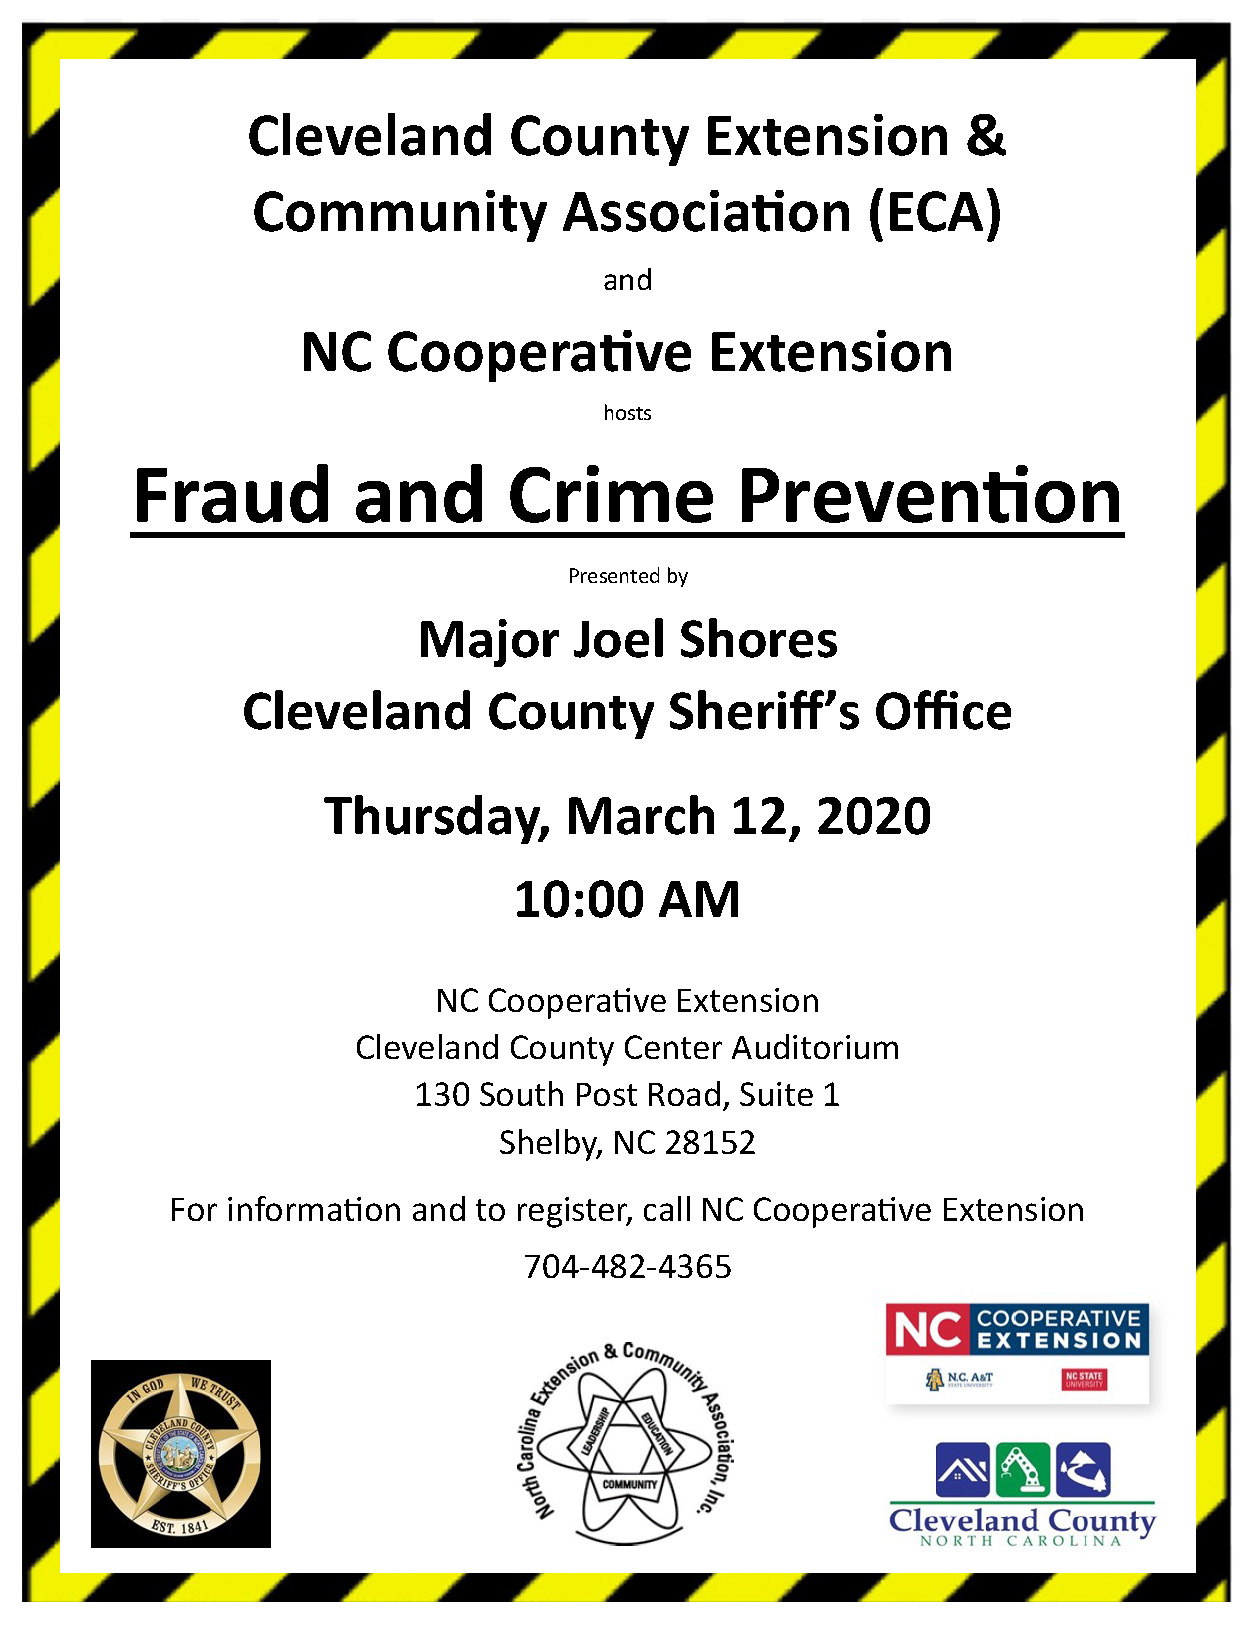 Crime and Fraud Prevention flyer